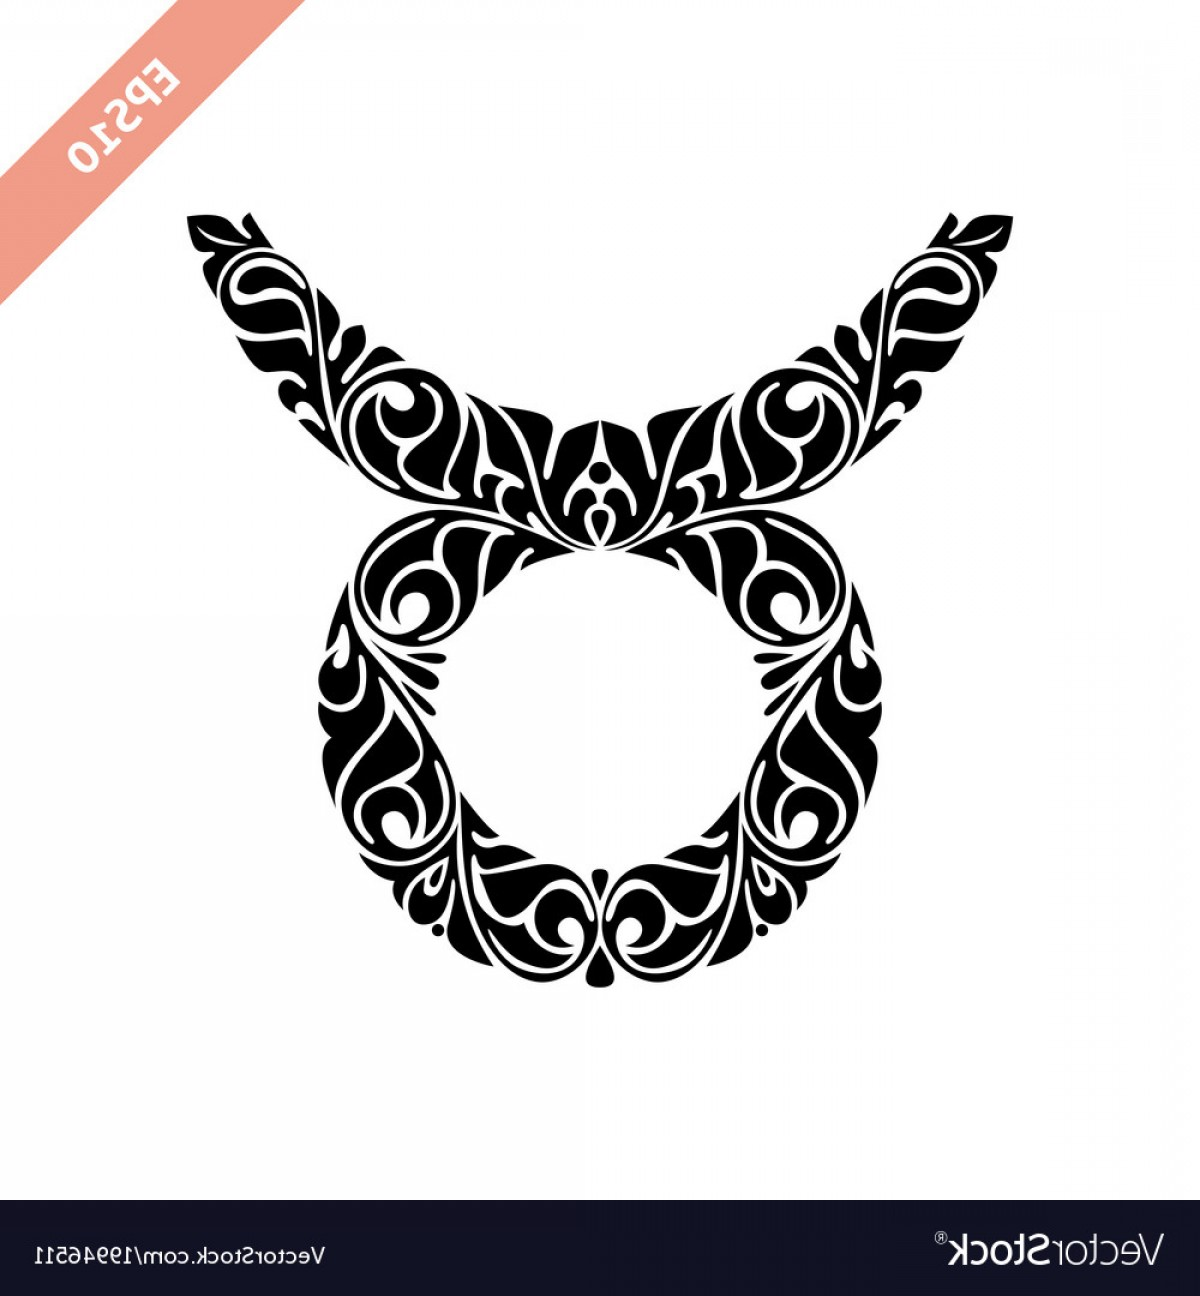 Taurus Vector: Hand Drawn Black Ornate Horoscope Symbol Taurus Vector